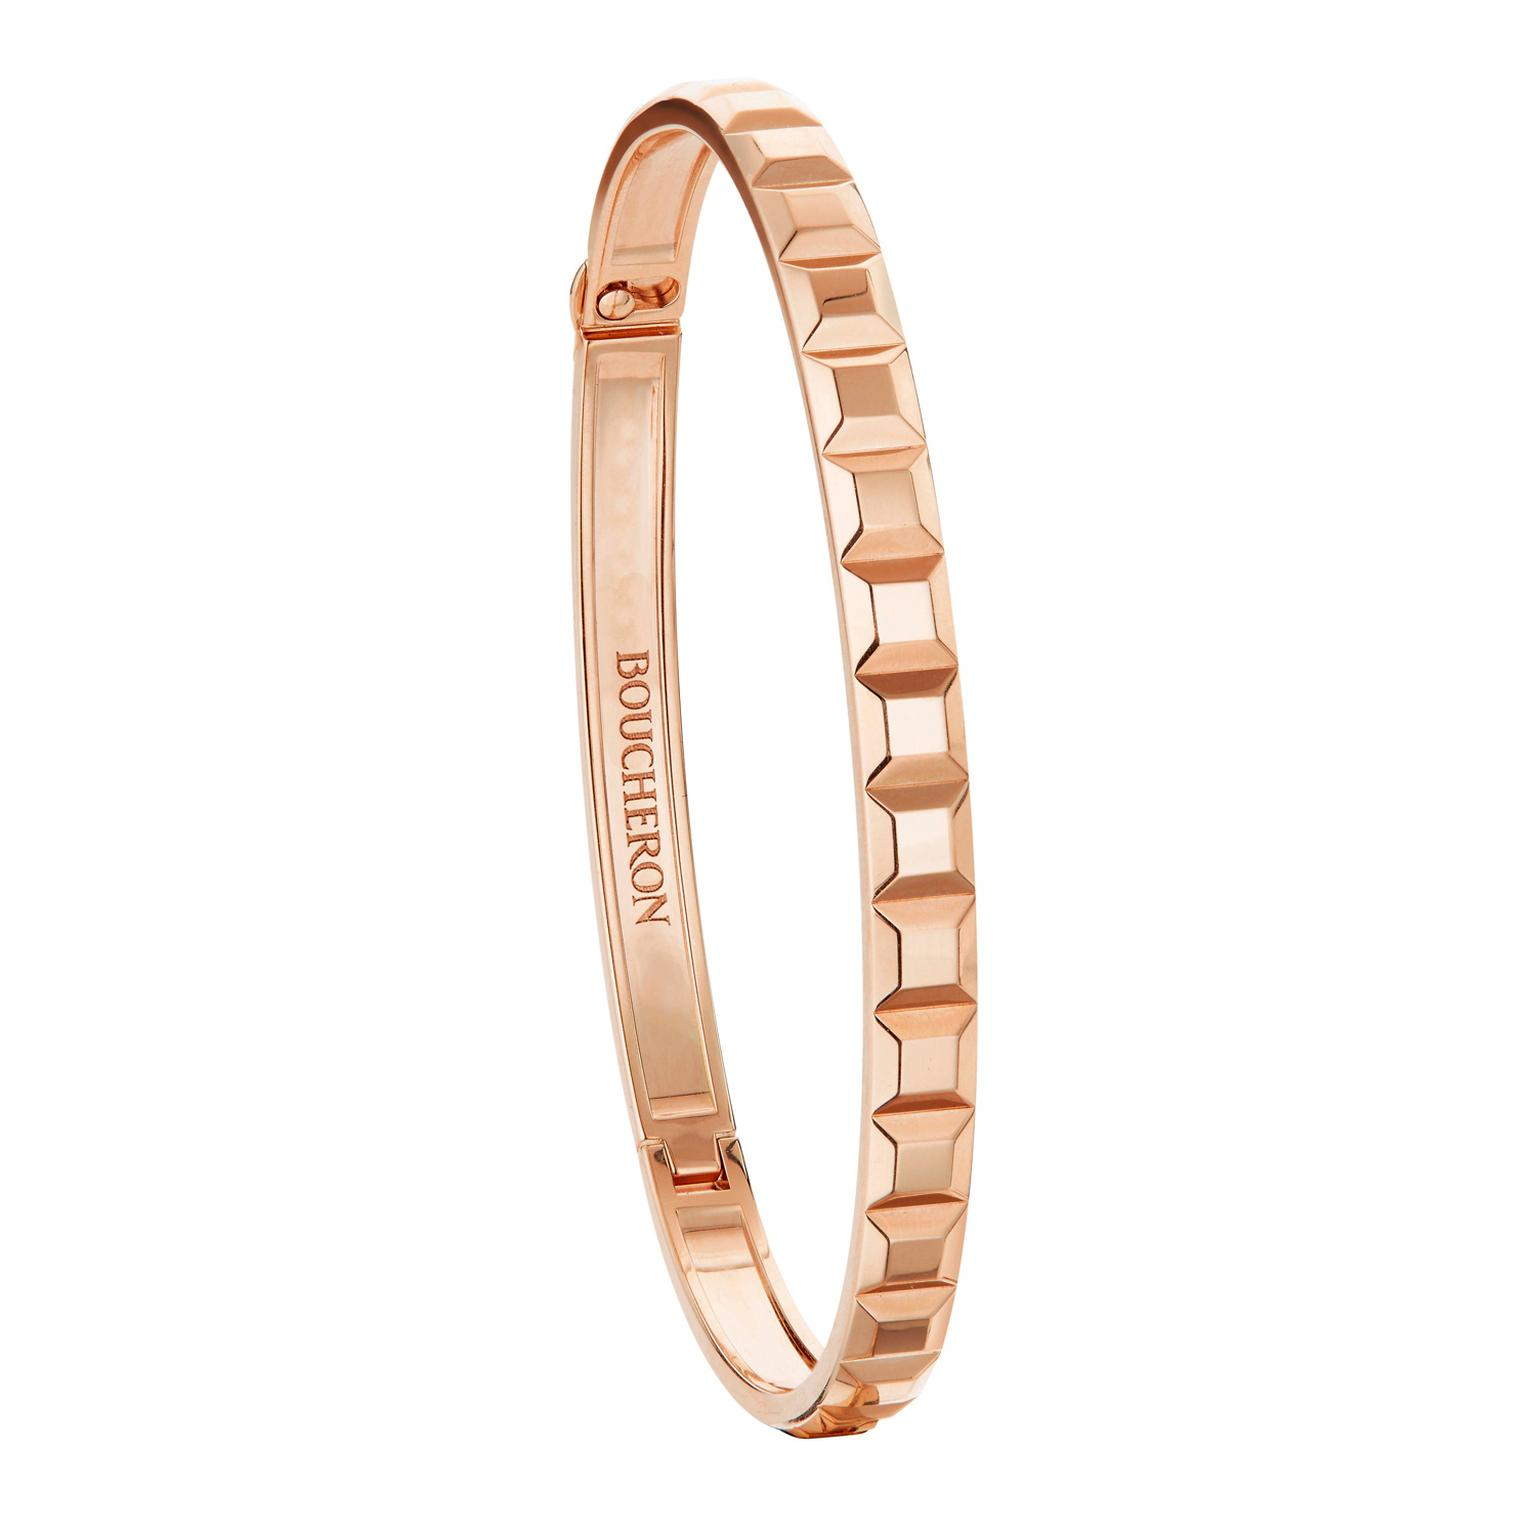 Boucheron Clou de Paris bangle in rose gold